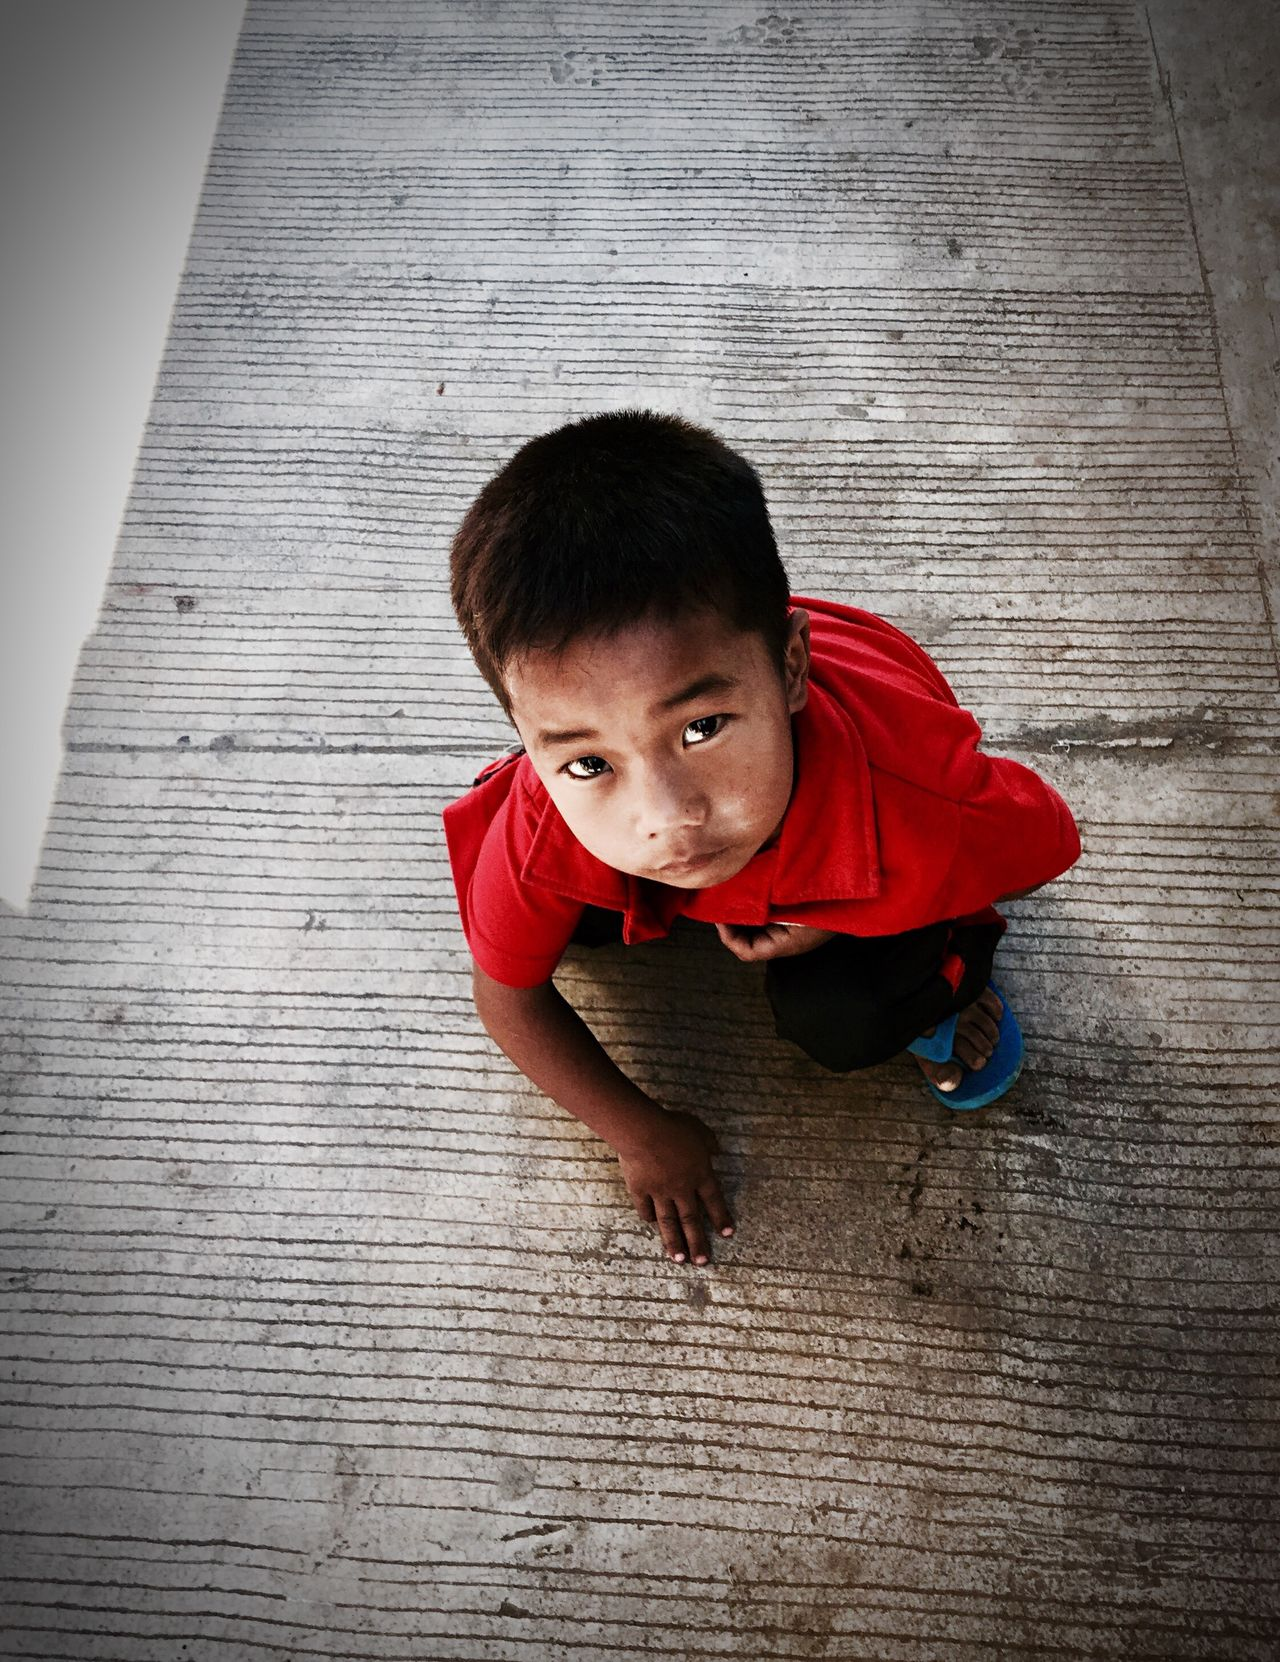 Beauty and simplicity Child Childhood Portrait Children Only Real People Streetphotography Ontheroad Philippines People Around The World